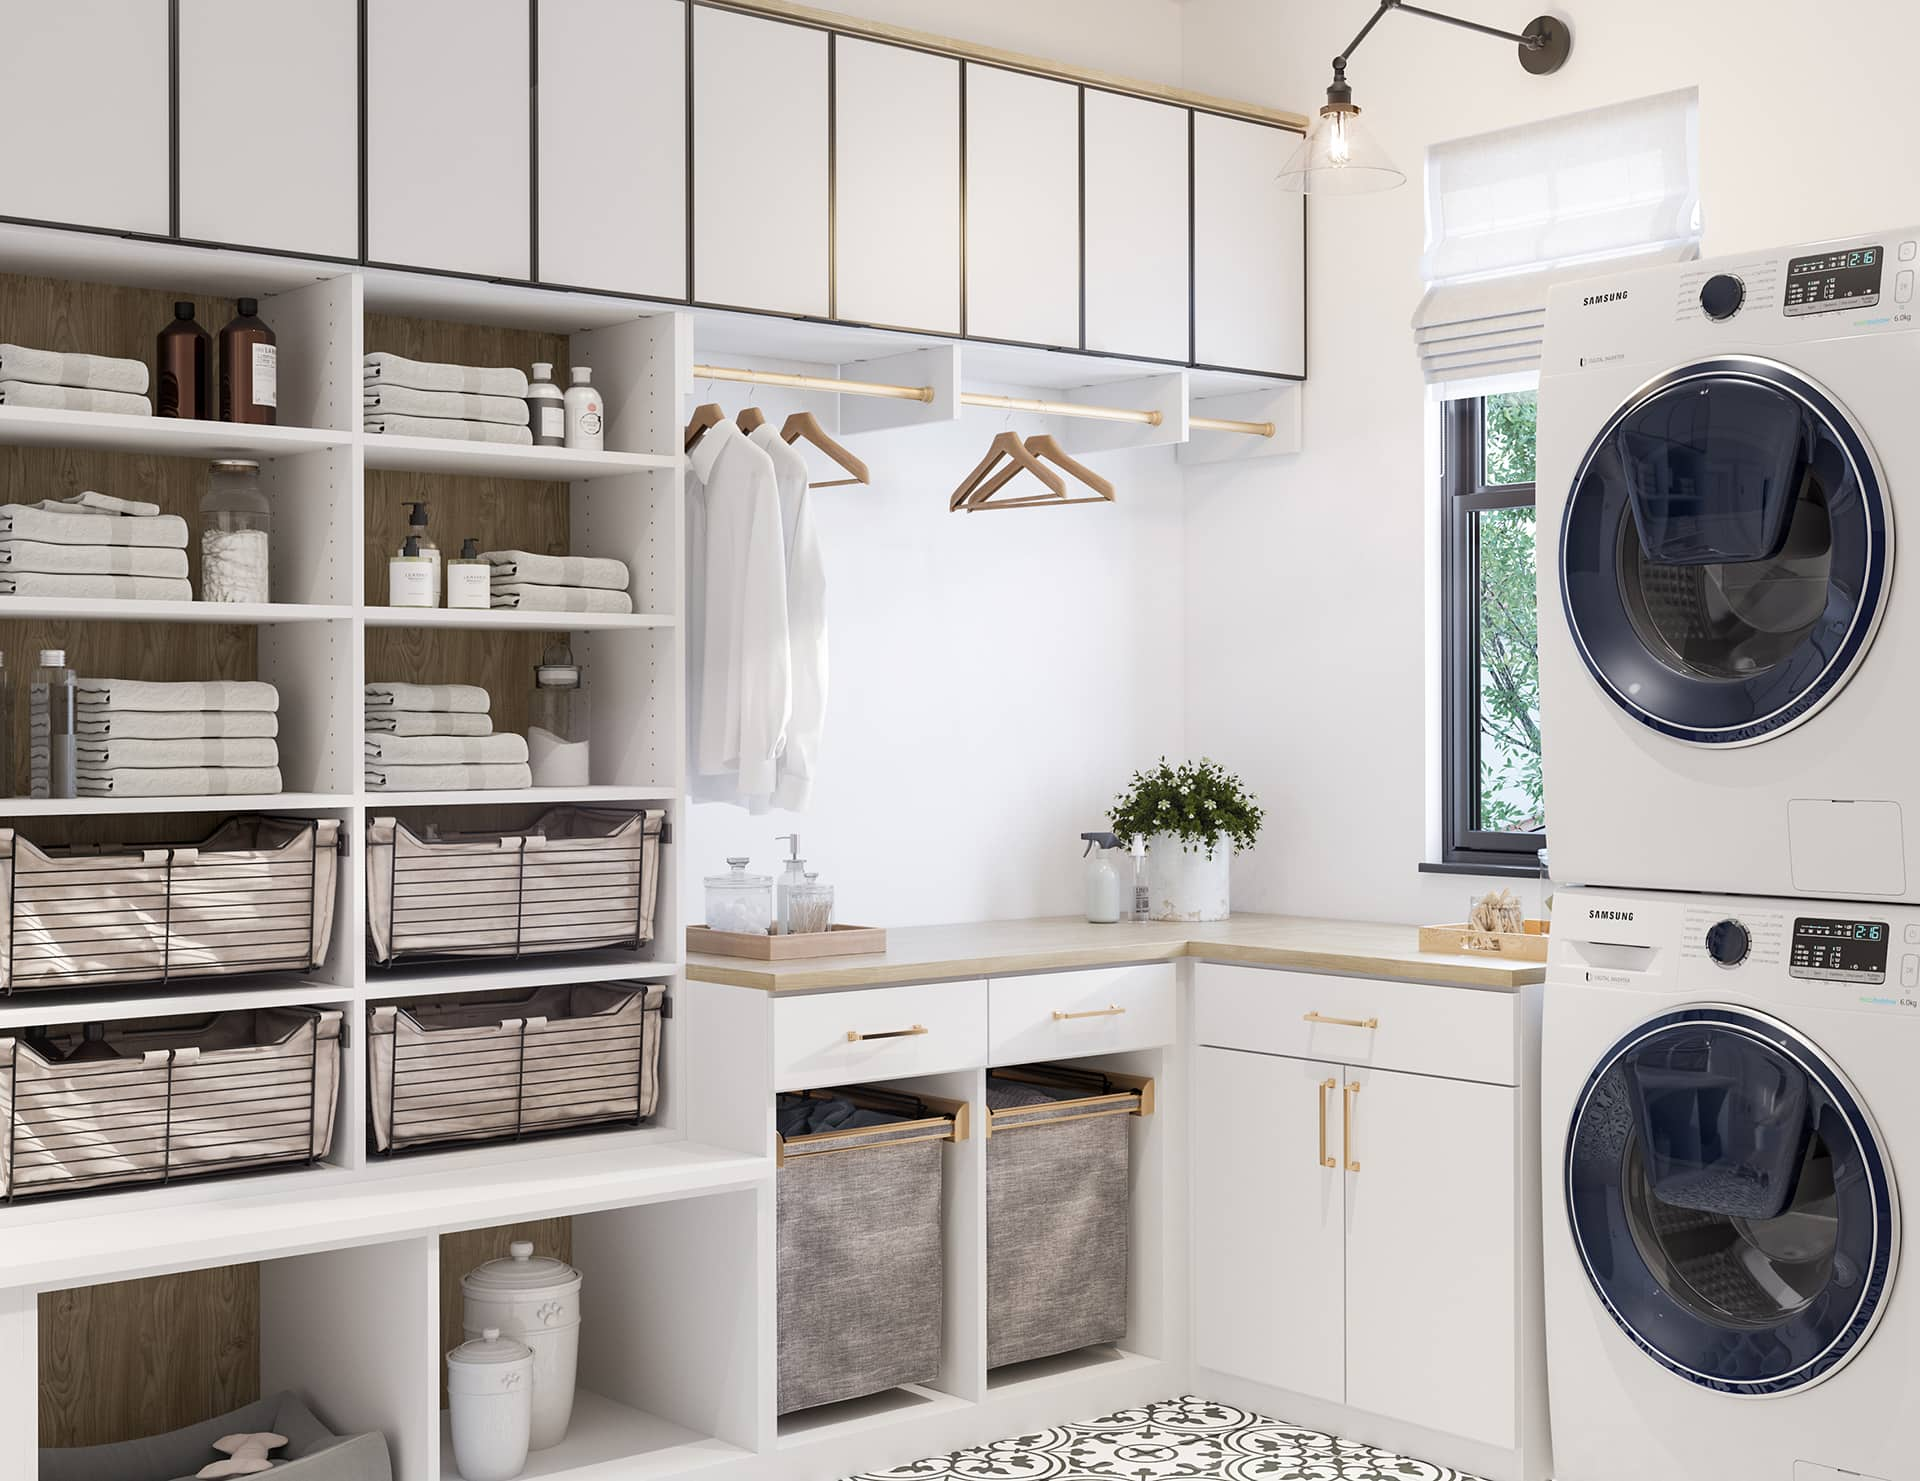 designer laundry room with feature light and tiled floor organised open shelves